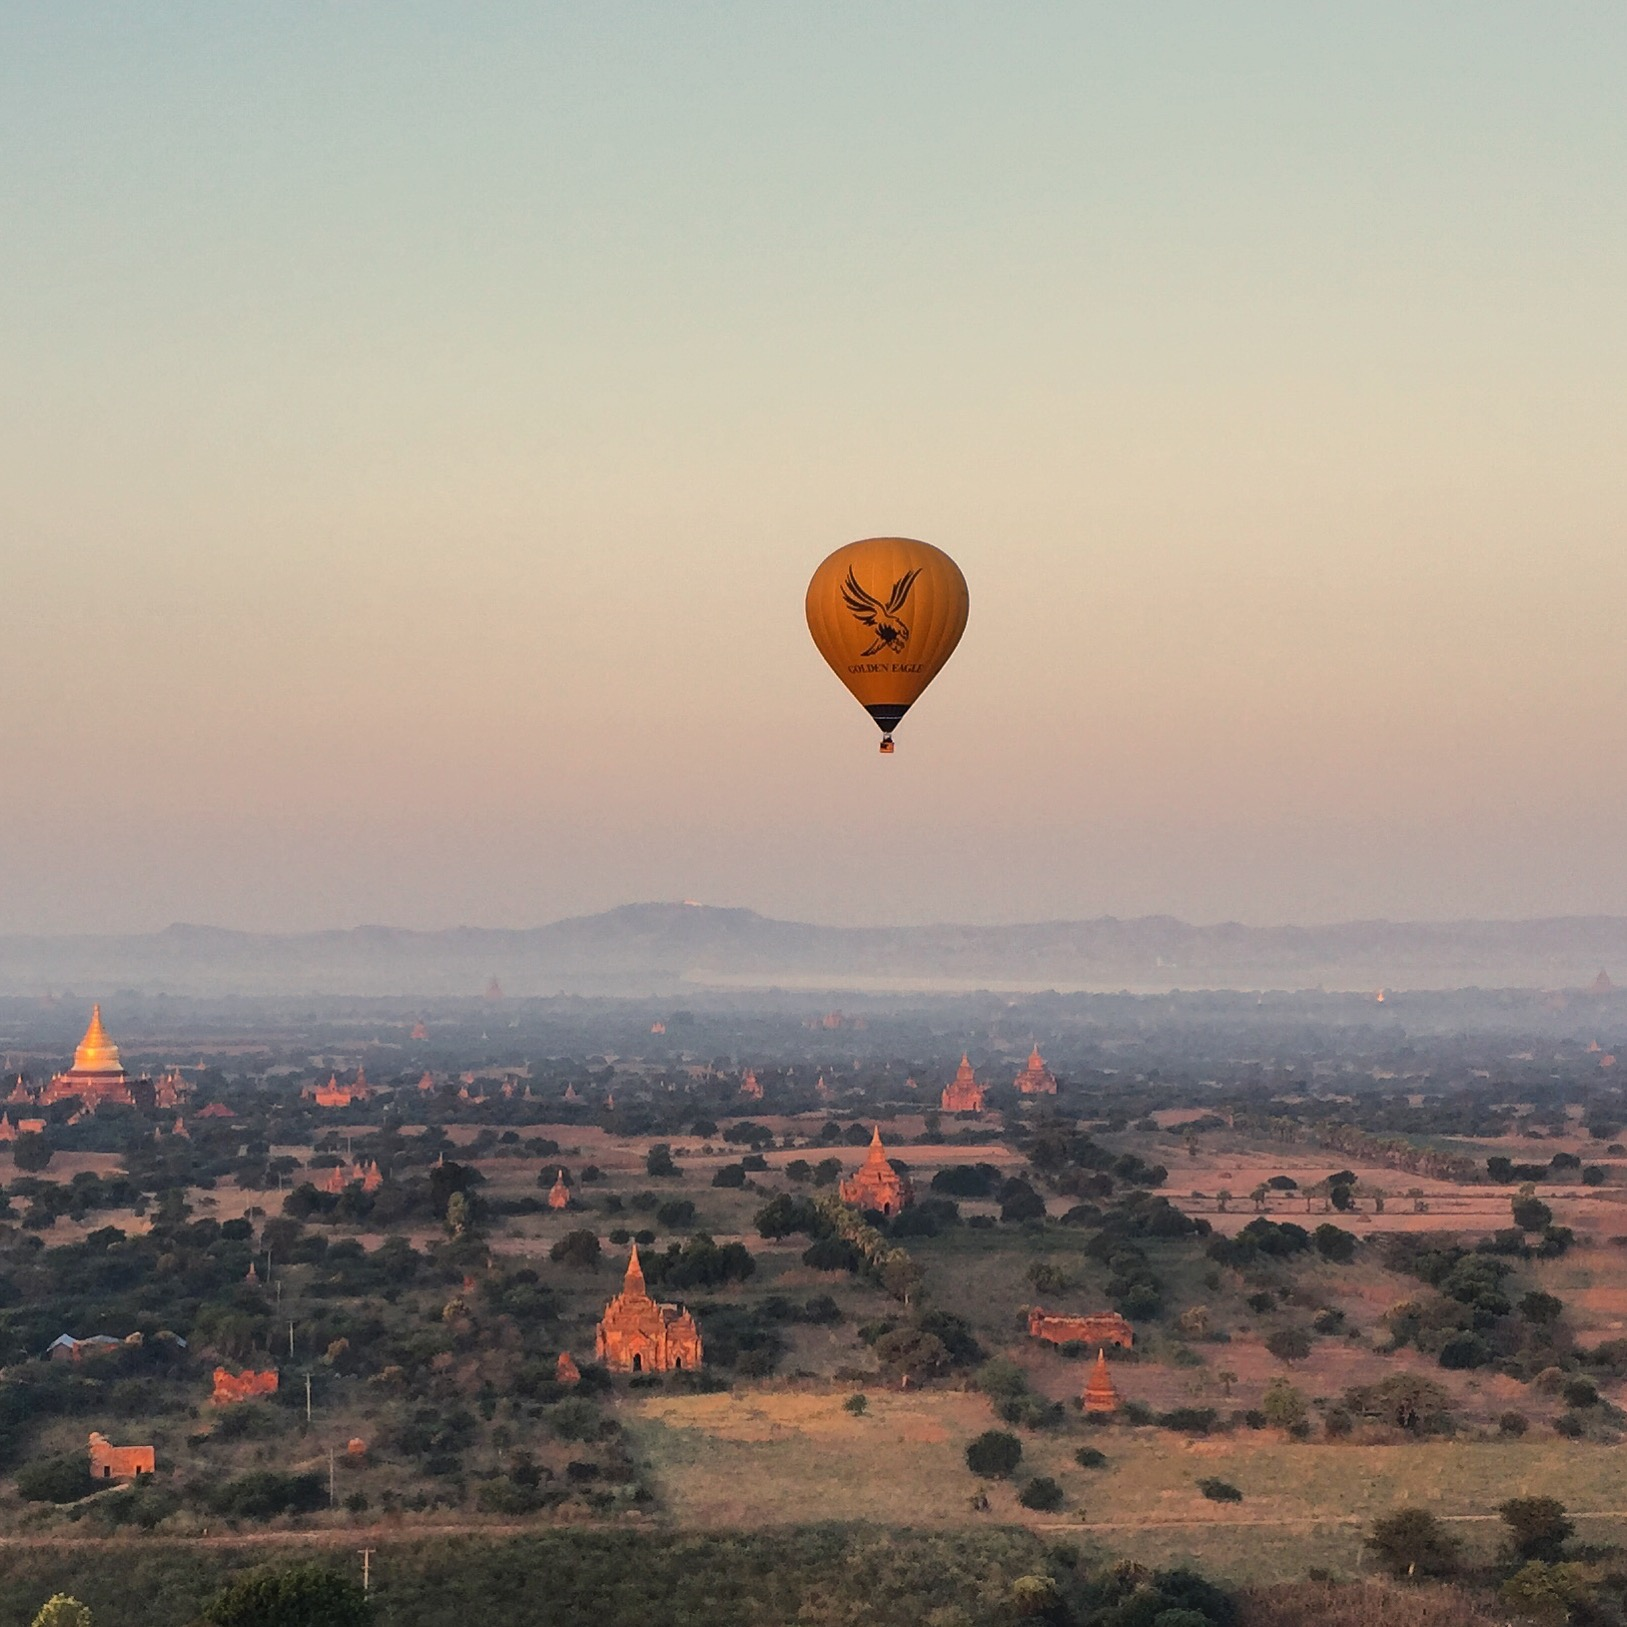 The best view of Bagan is from a hot air balloon at sunrise.  It's fun to watch the town awaken, the shepherds leading their sheep and cows to the pasture, the monks and nuns in search of alms, and the farmers tending to their crops.  It's a quiet morning, as there are very few motorized vehicles at that hour.